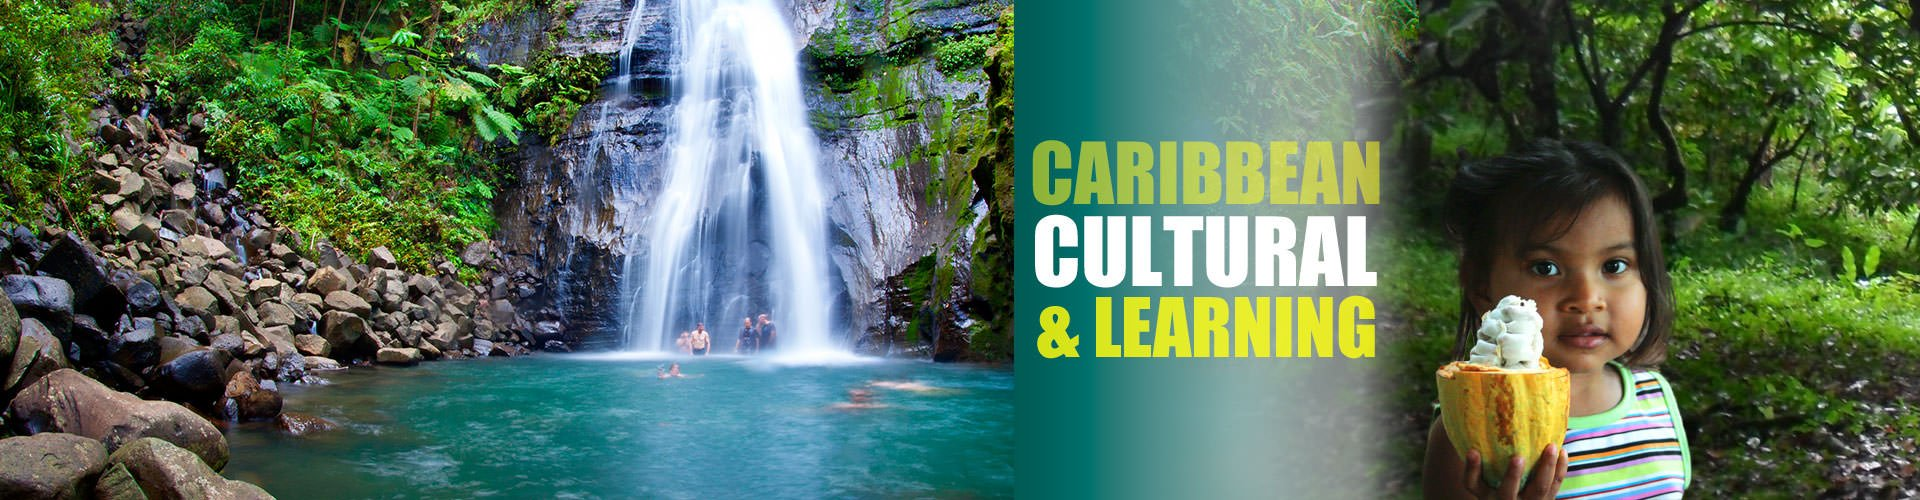 Caribbean Cultural & Learning